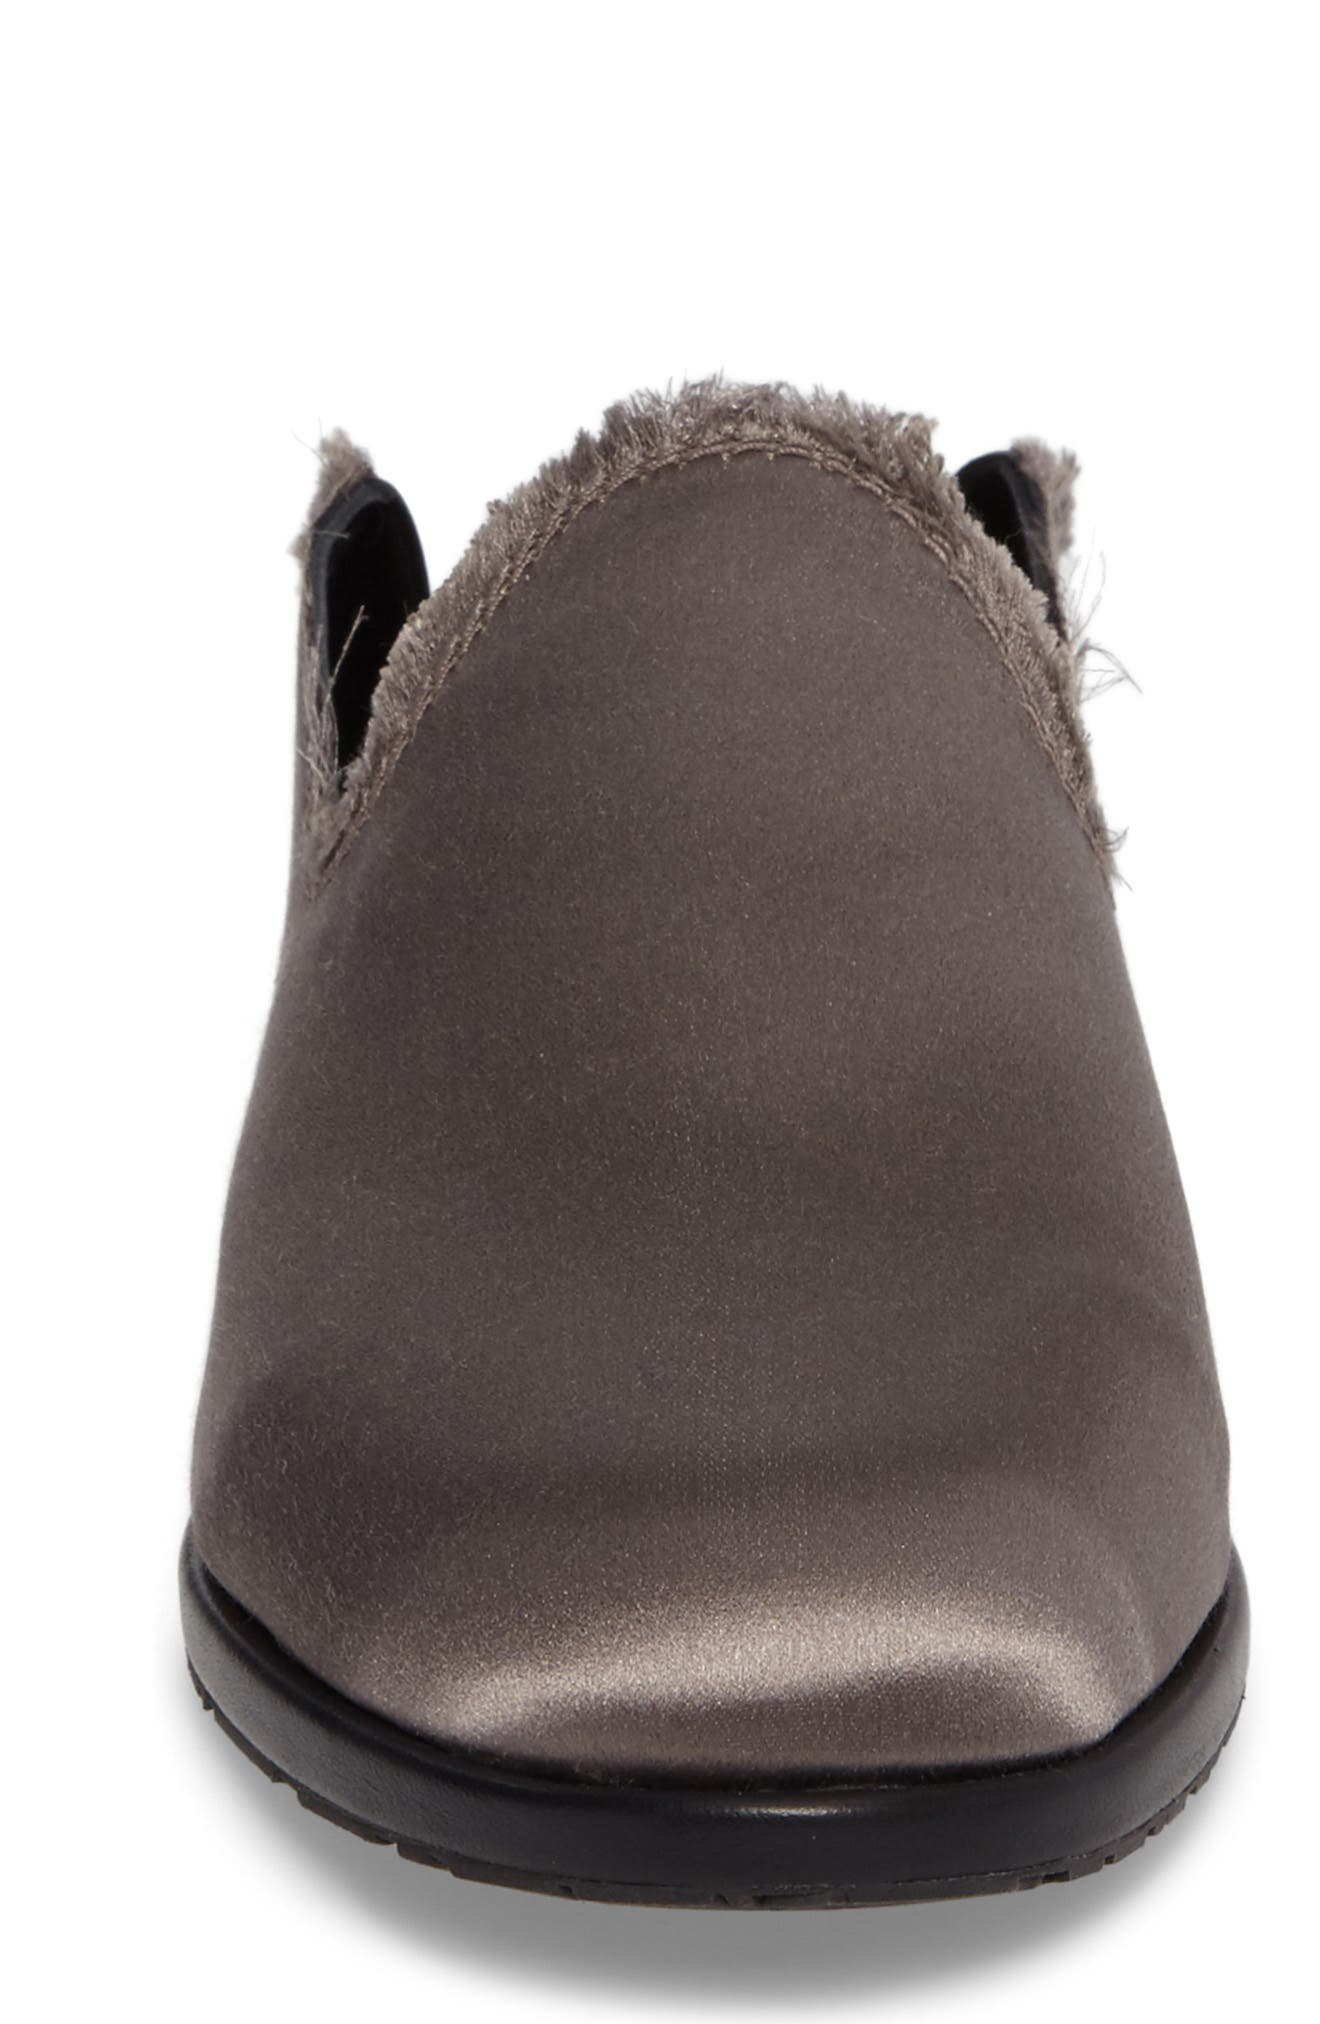 Yamir Convertible Loafer,                             Alternate thumbnail 5, color,                             020